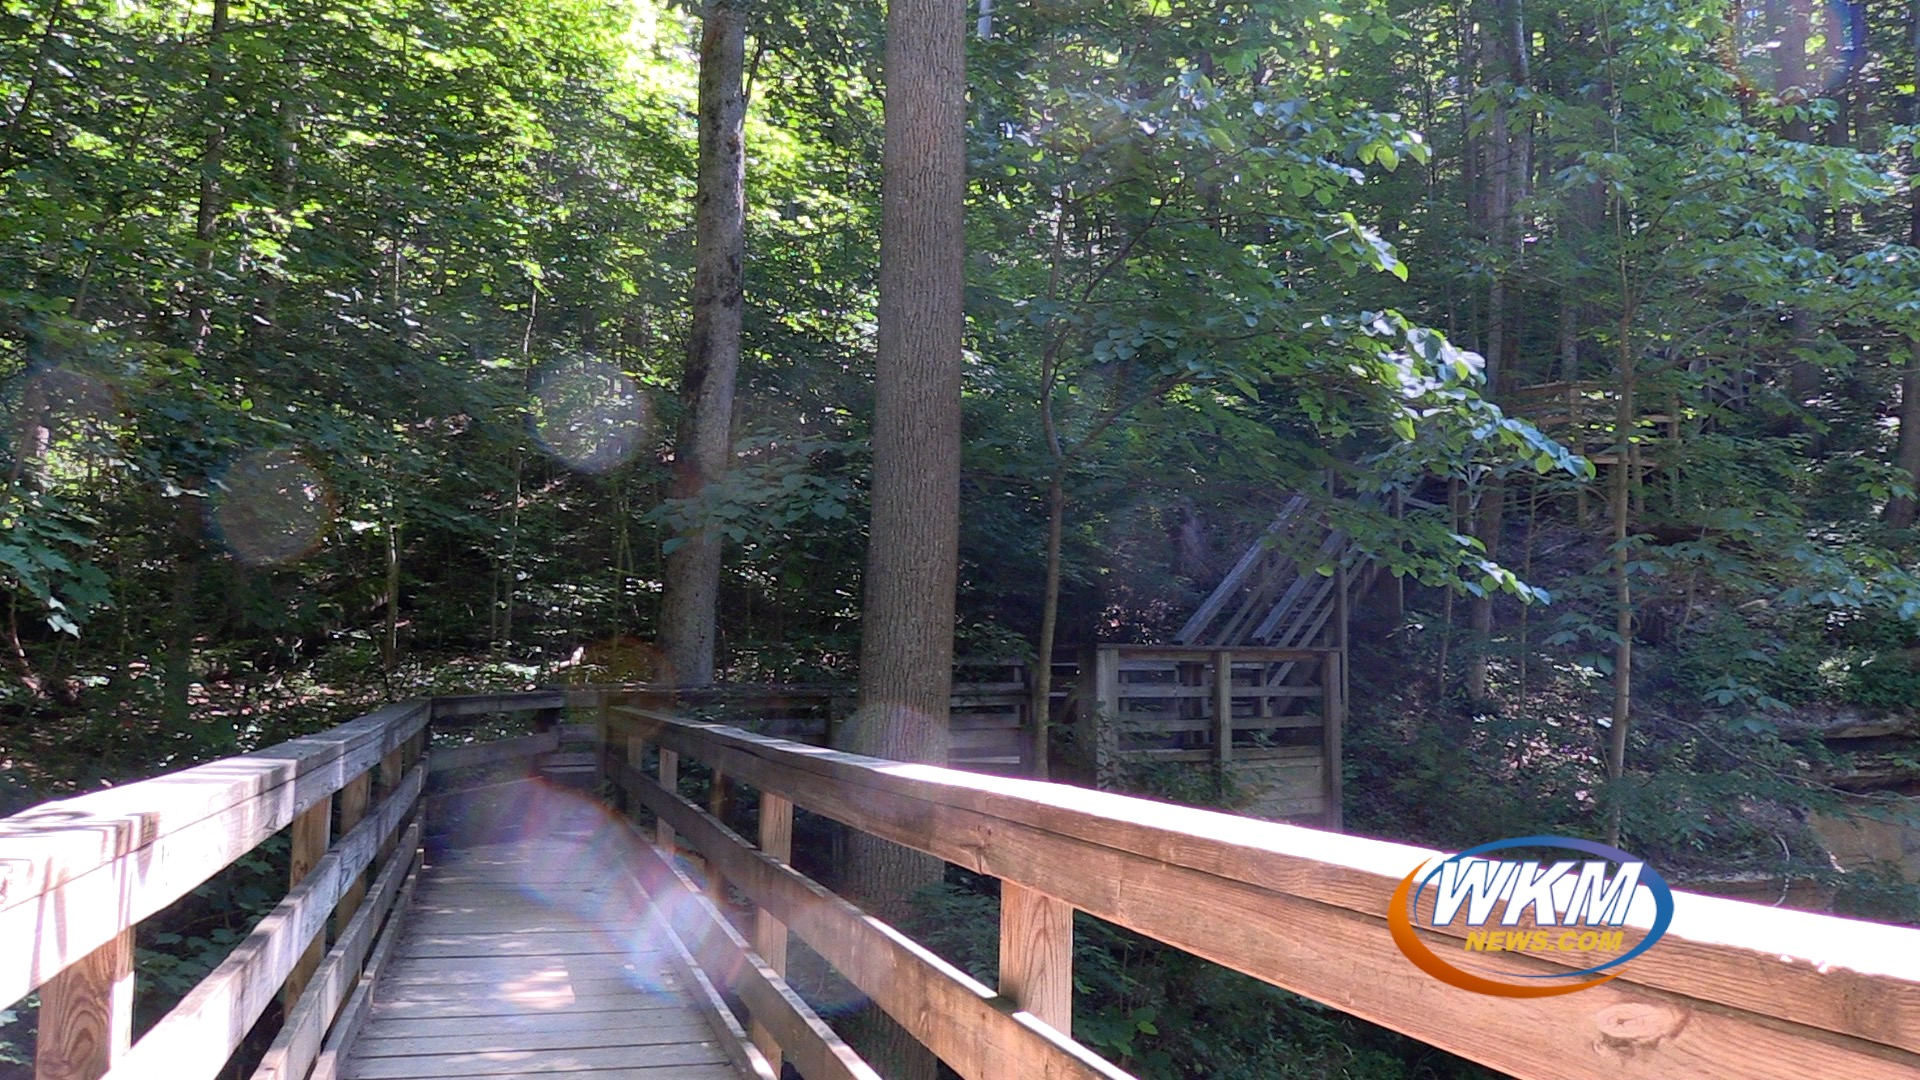 Hiking Season is Here at Clifty Falls State Park